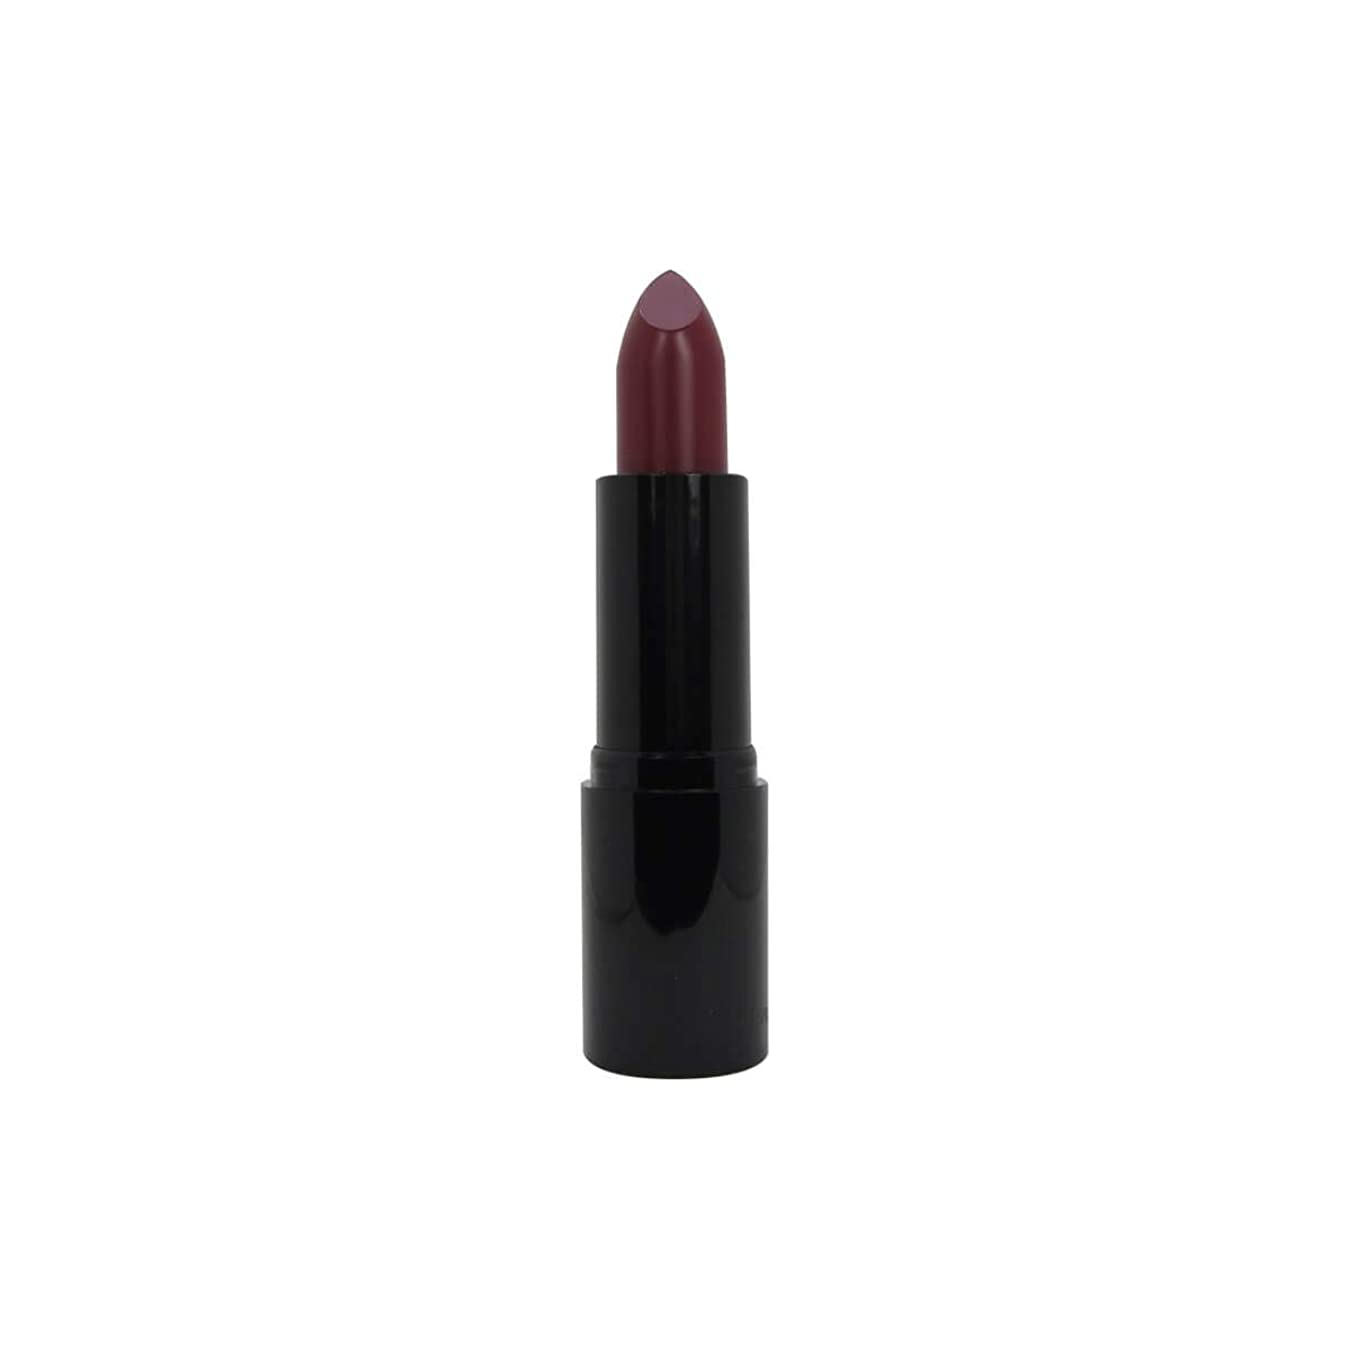 悪いきゅうりカルシウムSkinerie The Collection Lipstick 11 Berry Diva 3,5g